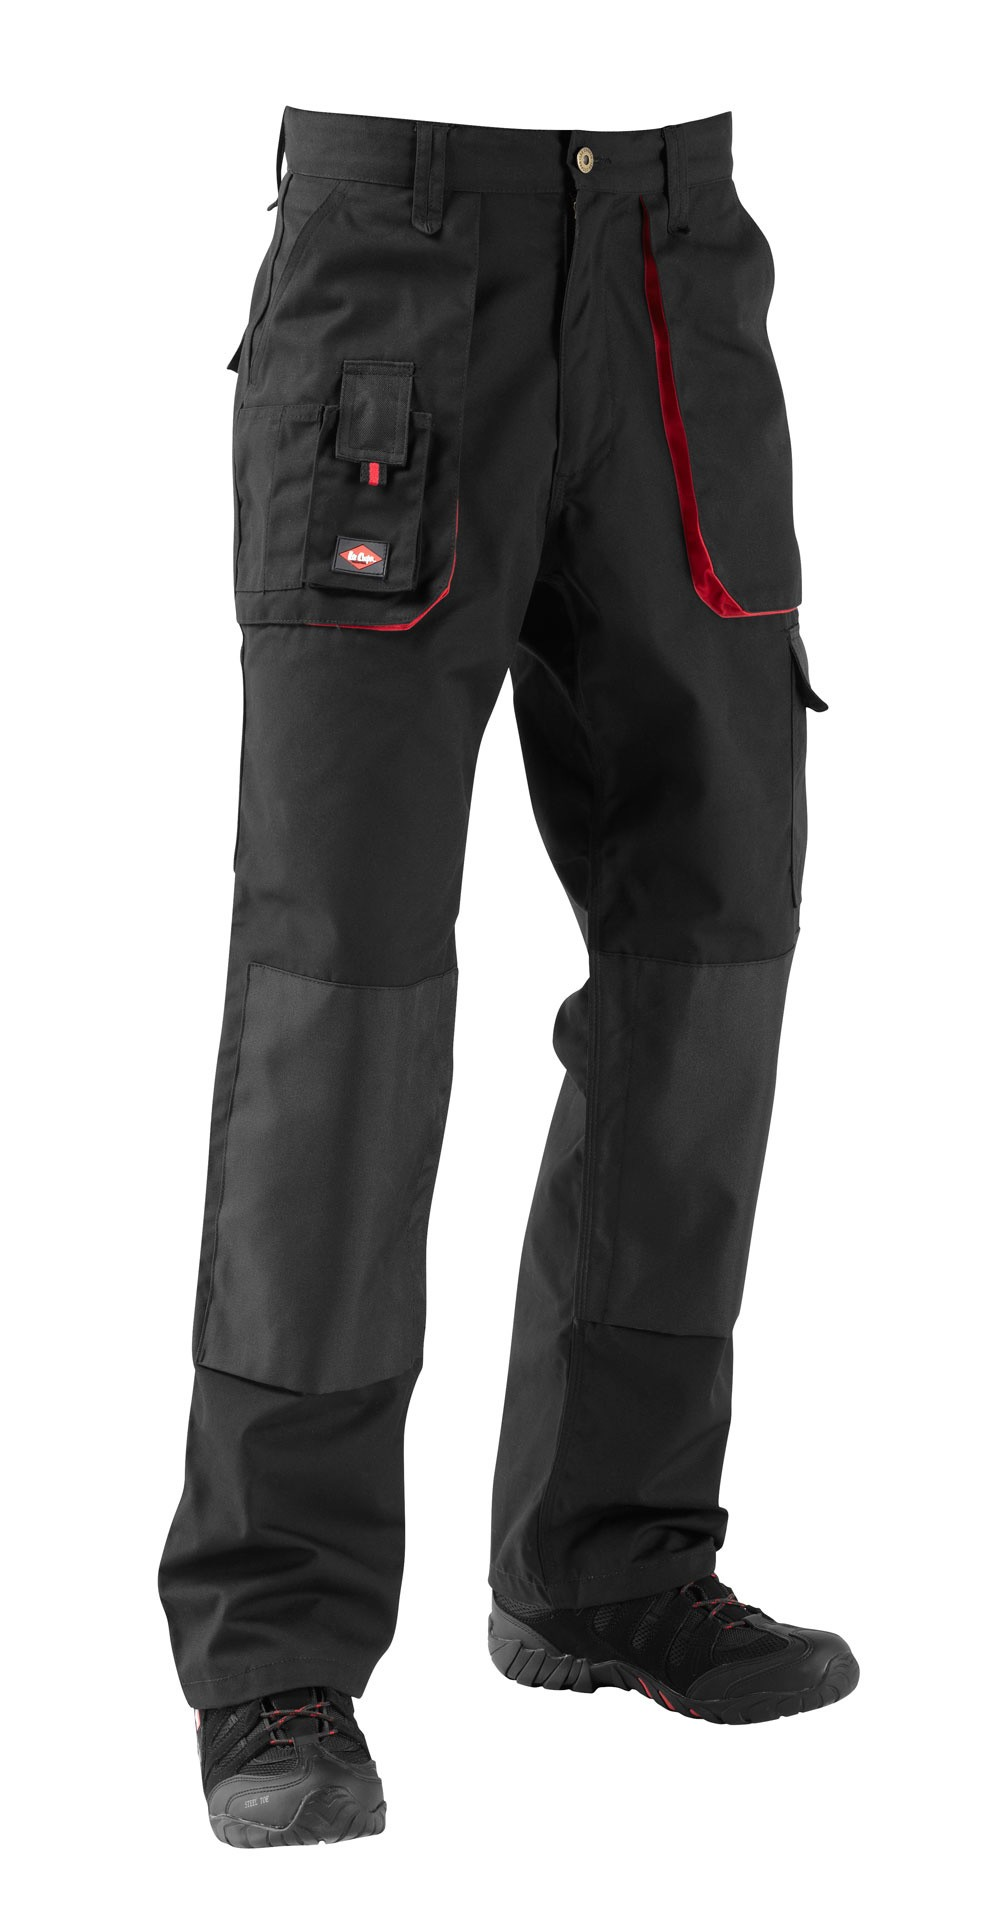 213 two colour cargo trouser